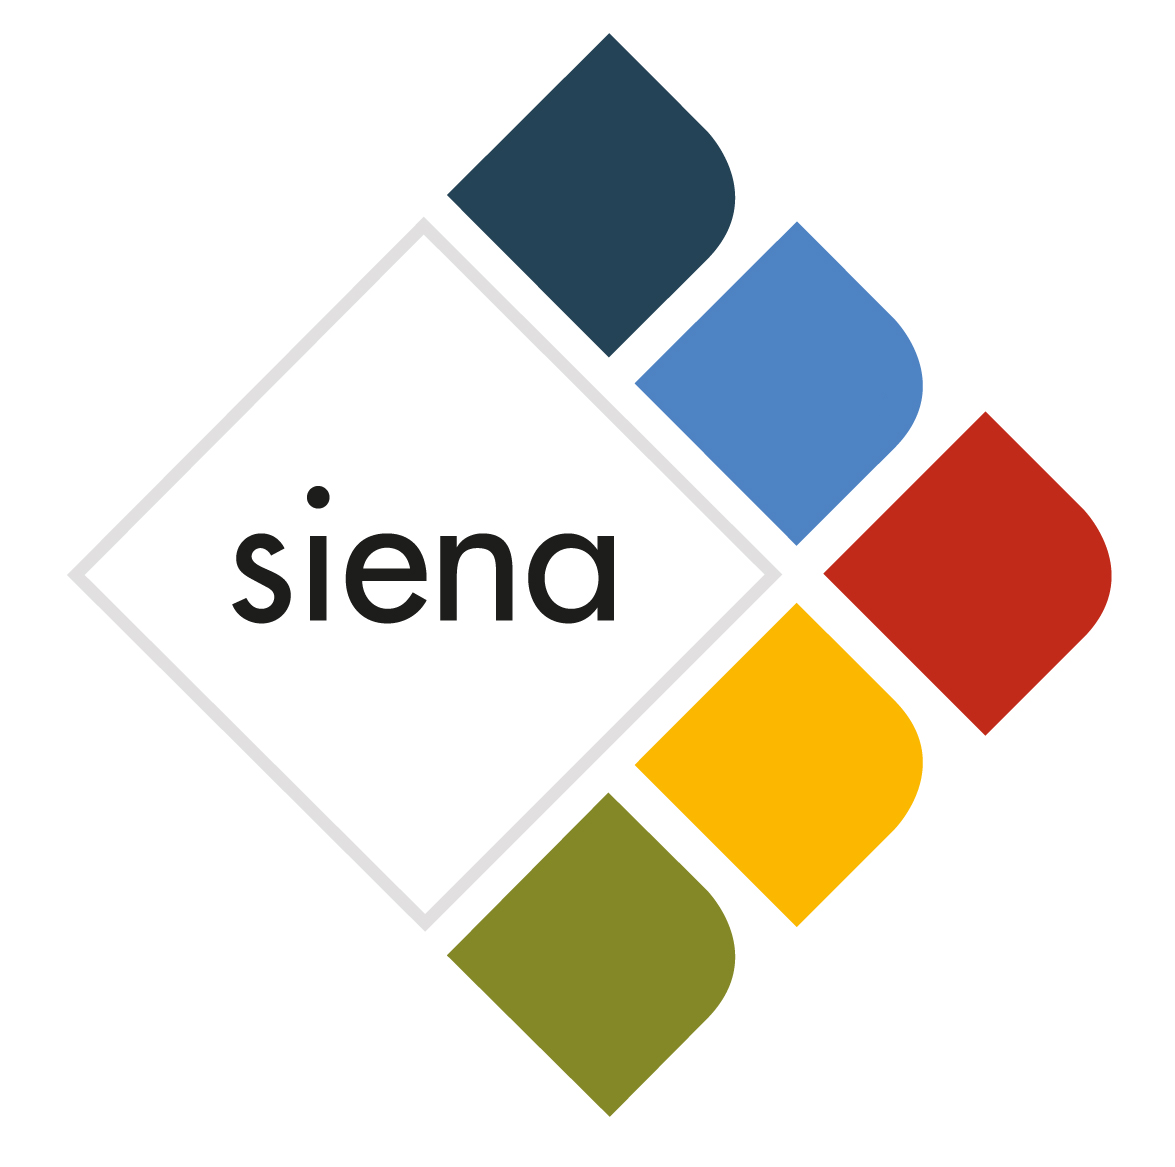 siena_final_logo_NOTEXT_DIGITAL_r1-01.png